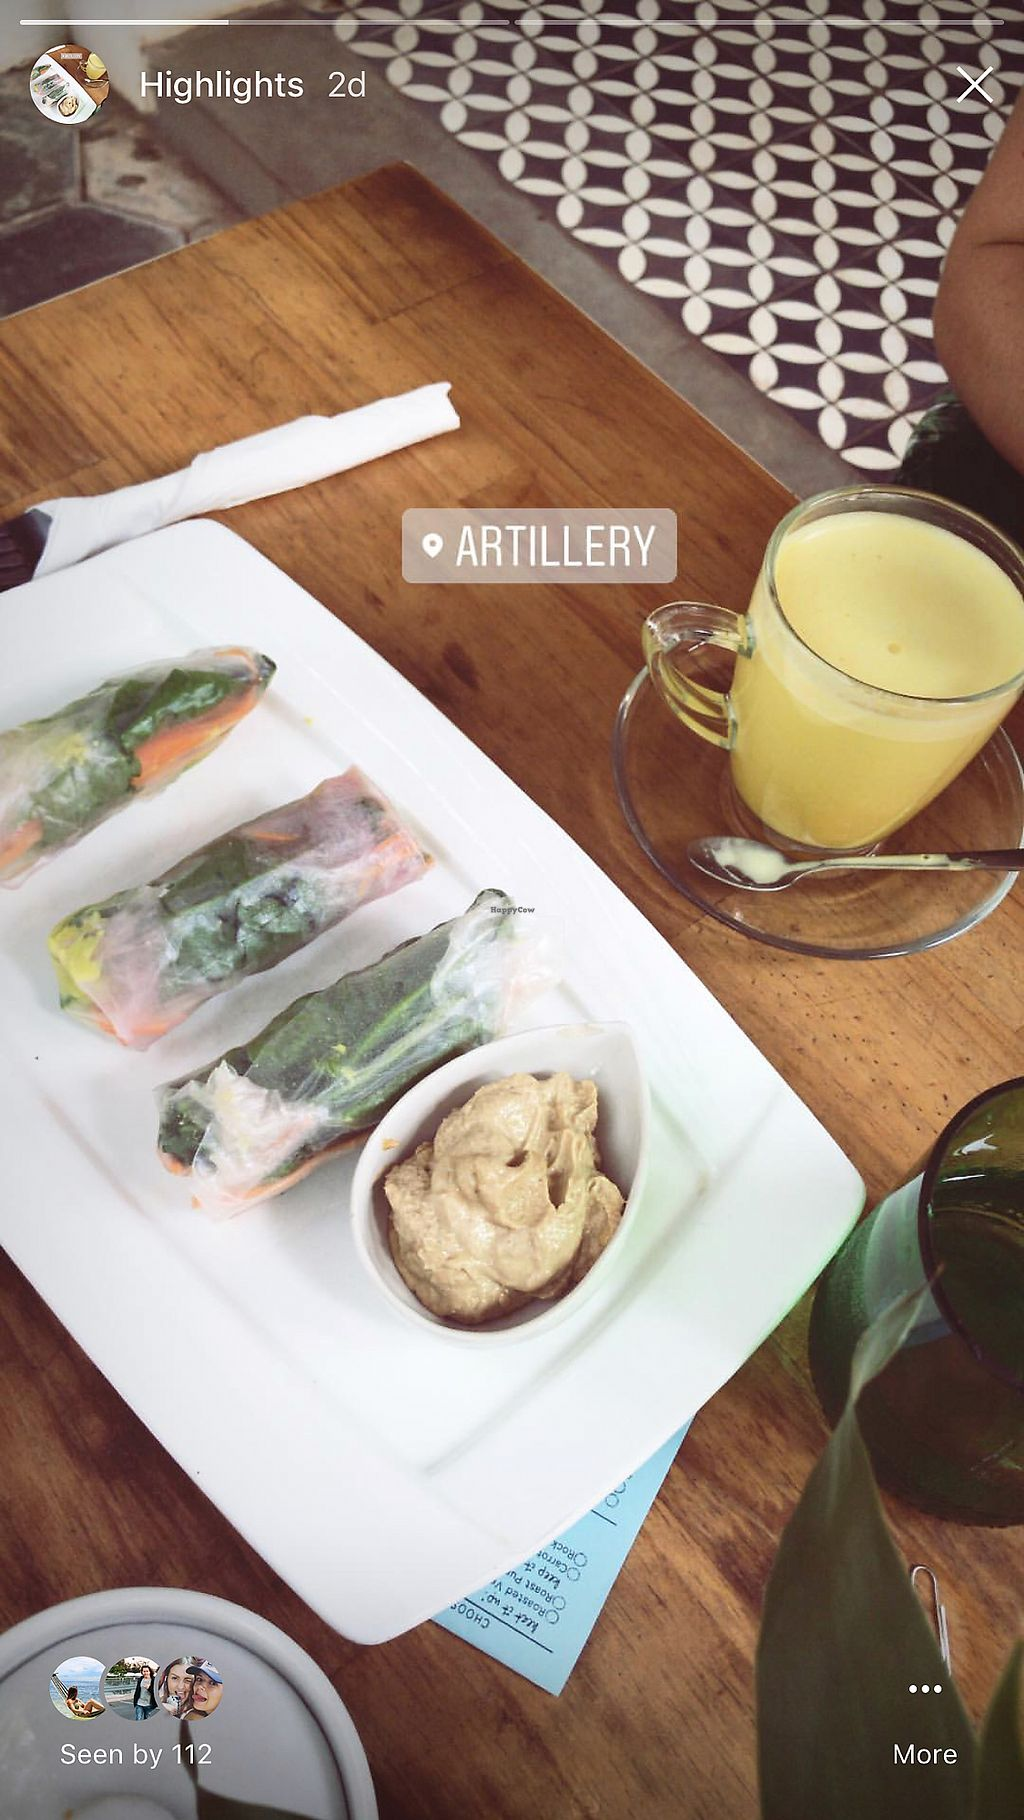 """Photo of ARTillery  by <a href=""""/members/profile/AnnaLevshin"""">AnnaLevshin</a> <br/>Rice paper rolls & tumeric latte <br/> February 21, 2018  - <a href='/contact/abuse/image/69630/362024'>Report</a>"""